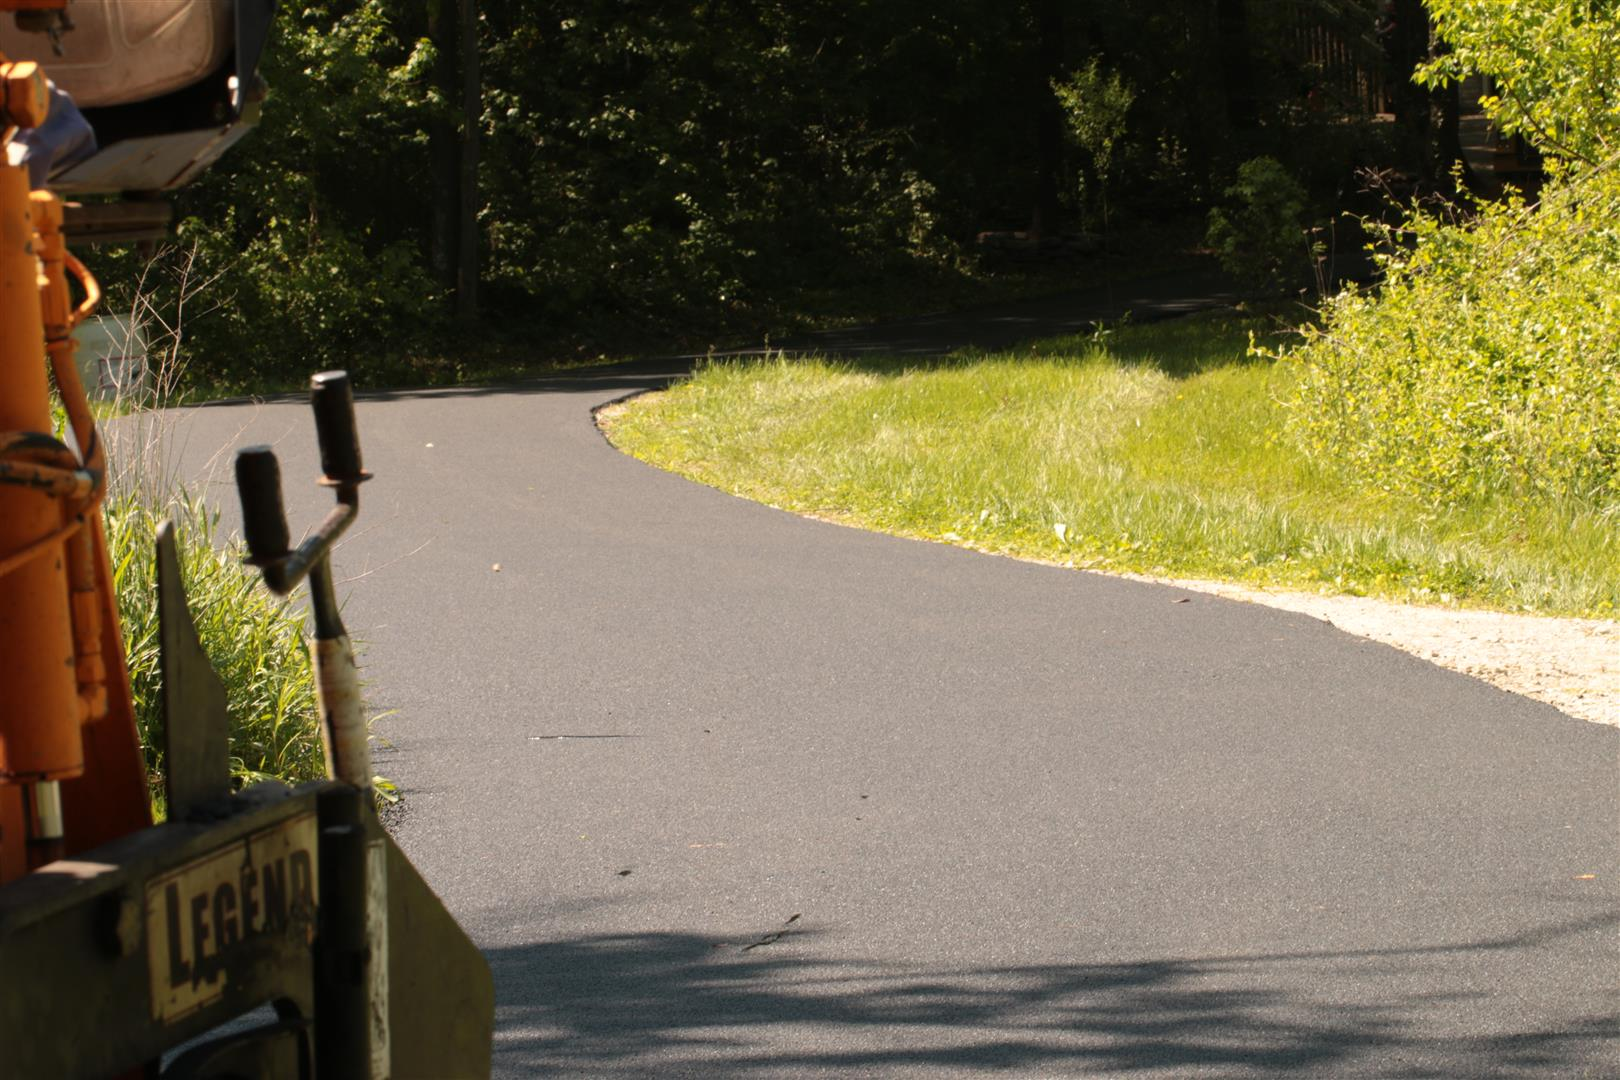 What To Look For When Selecting A Paving Contractor